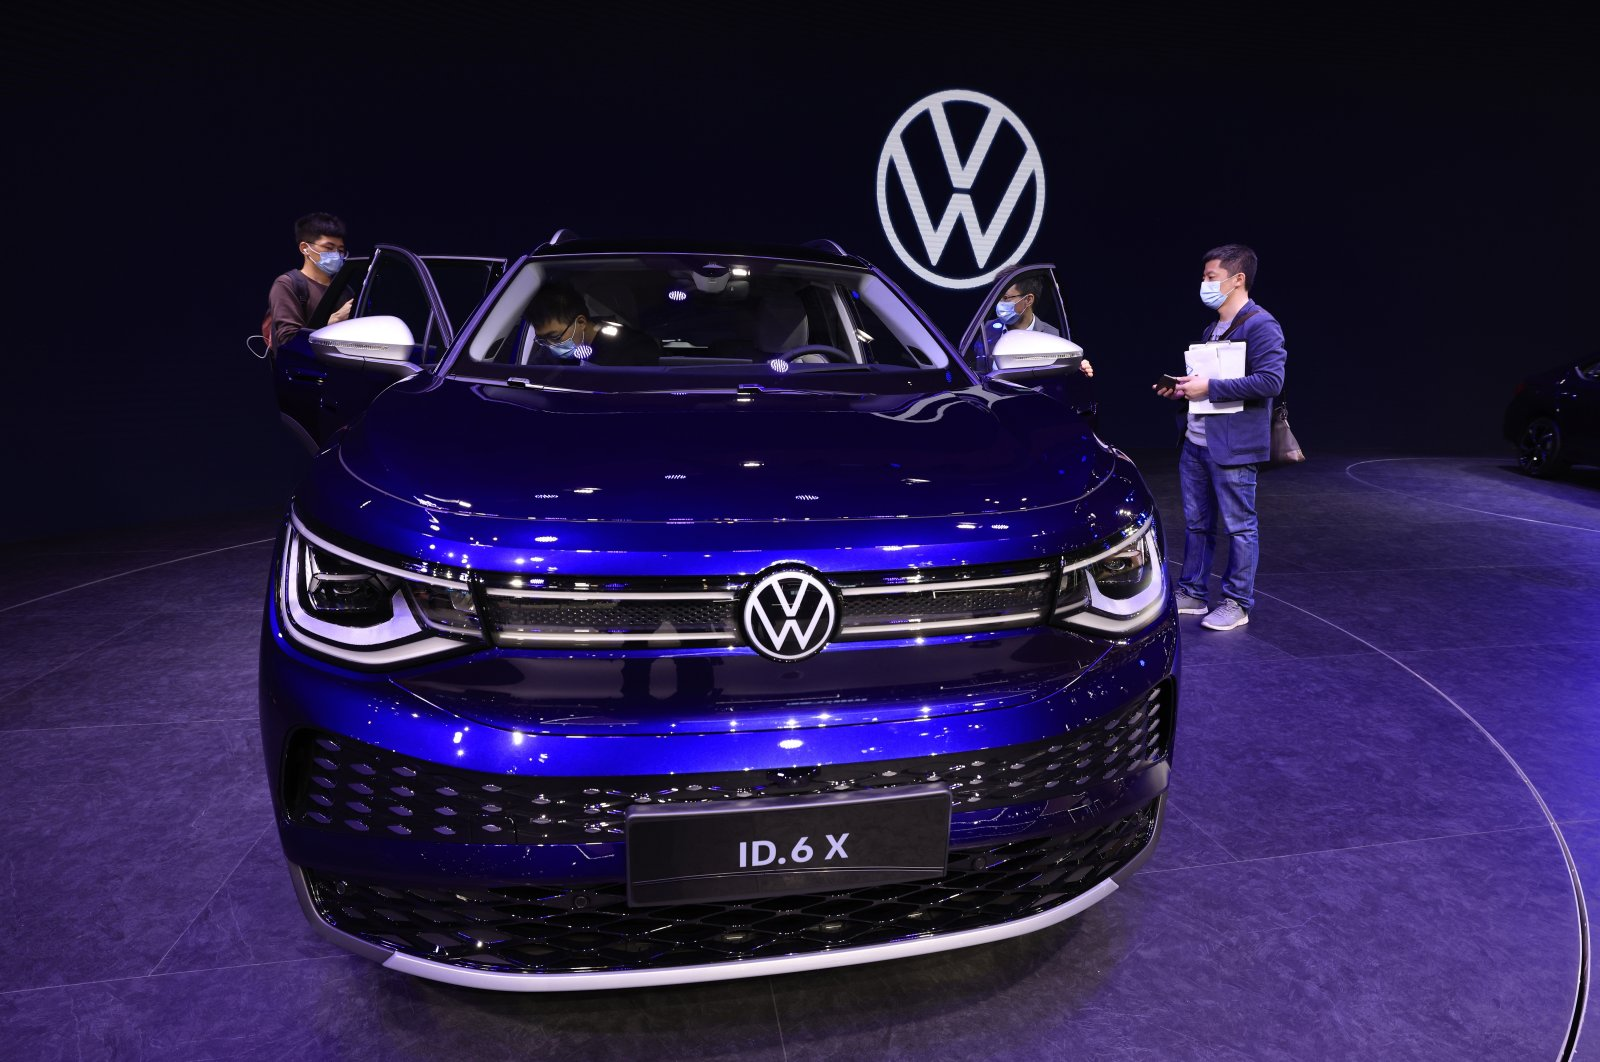 Visitors look at the latest electric car from Volkswagen during the Shanghai Auto Show in Shanghai, China, April 20, 2021. (AP Photo)